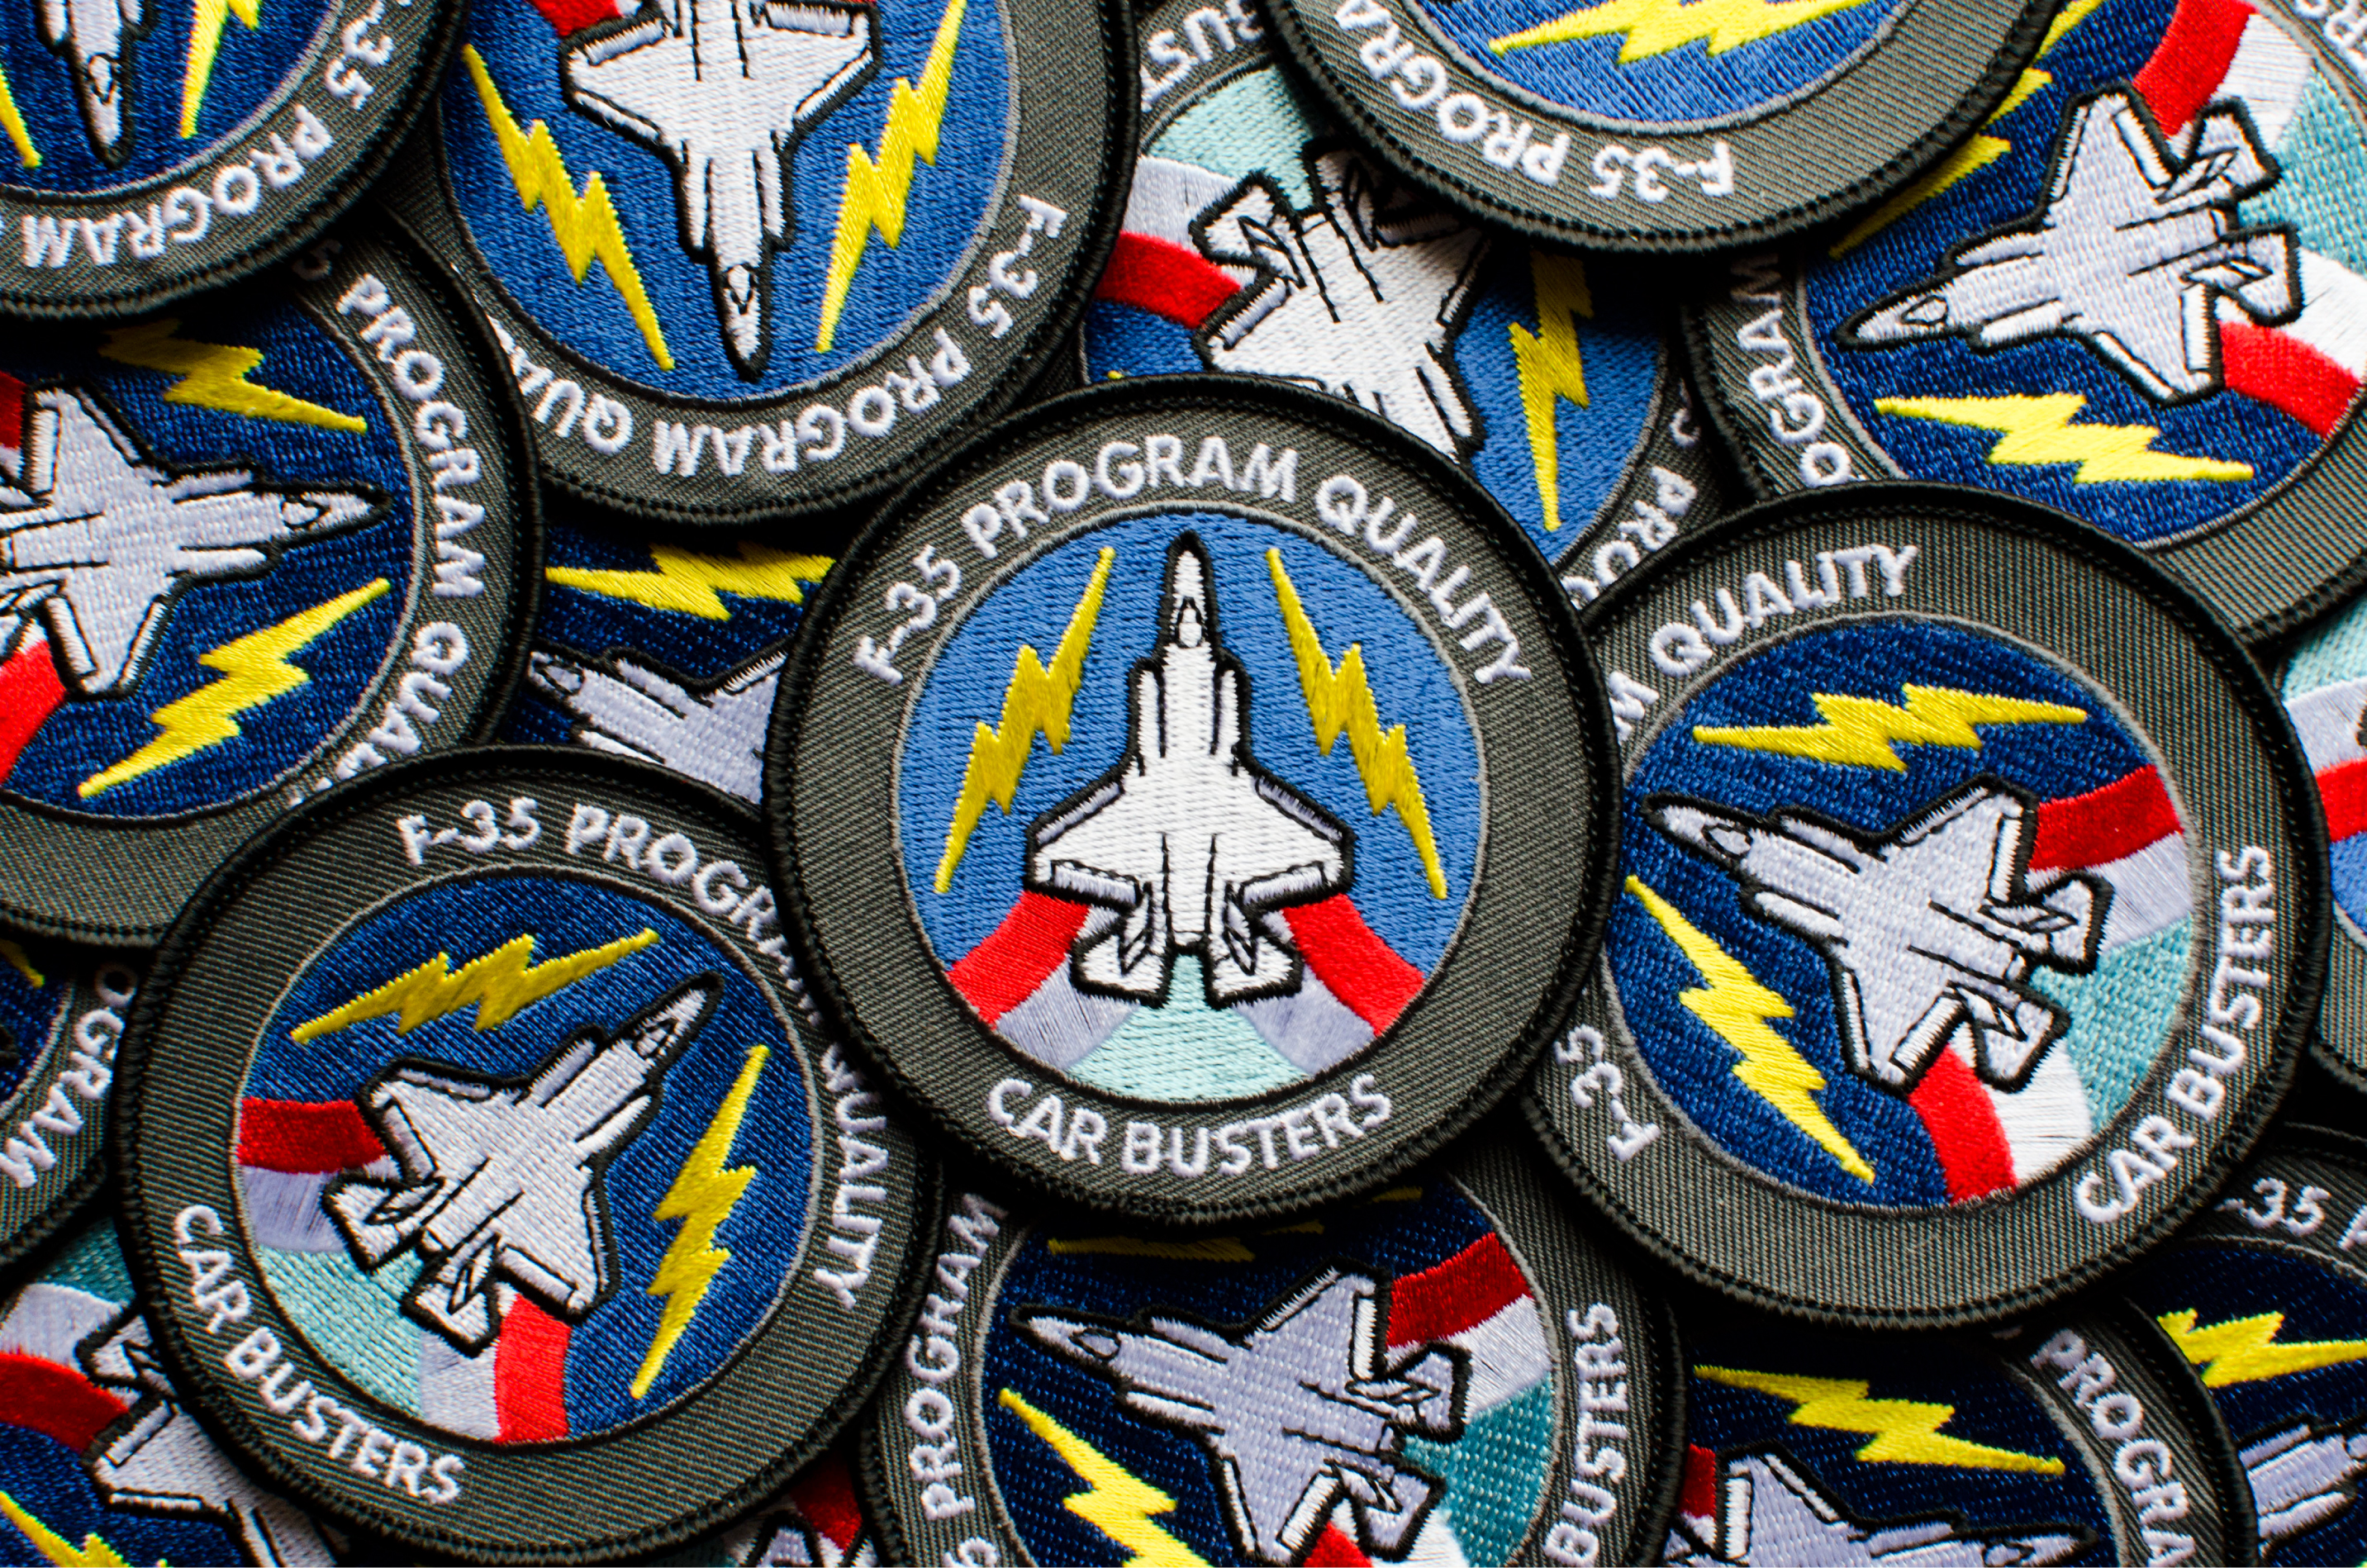 F-35 Program Quality Patch